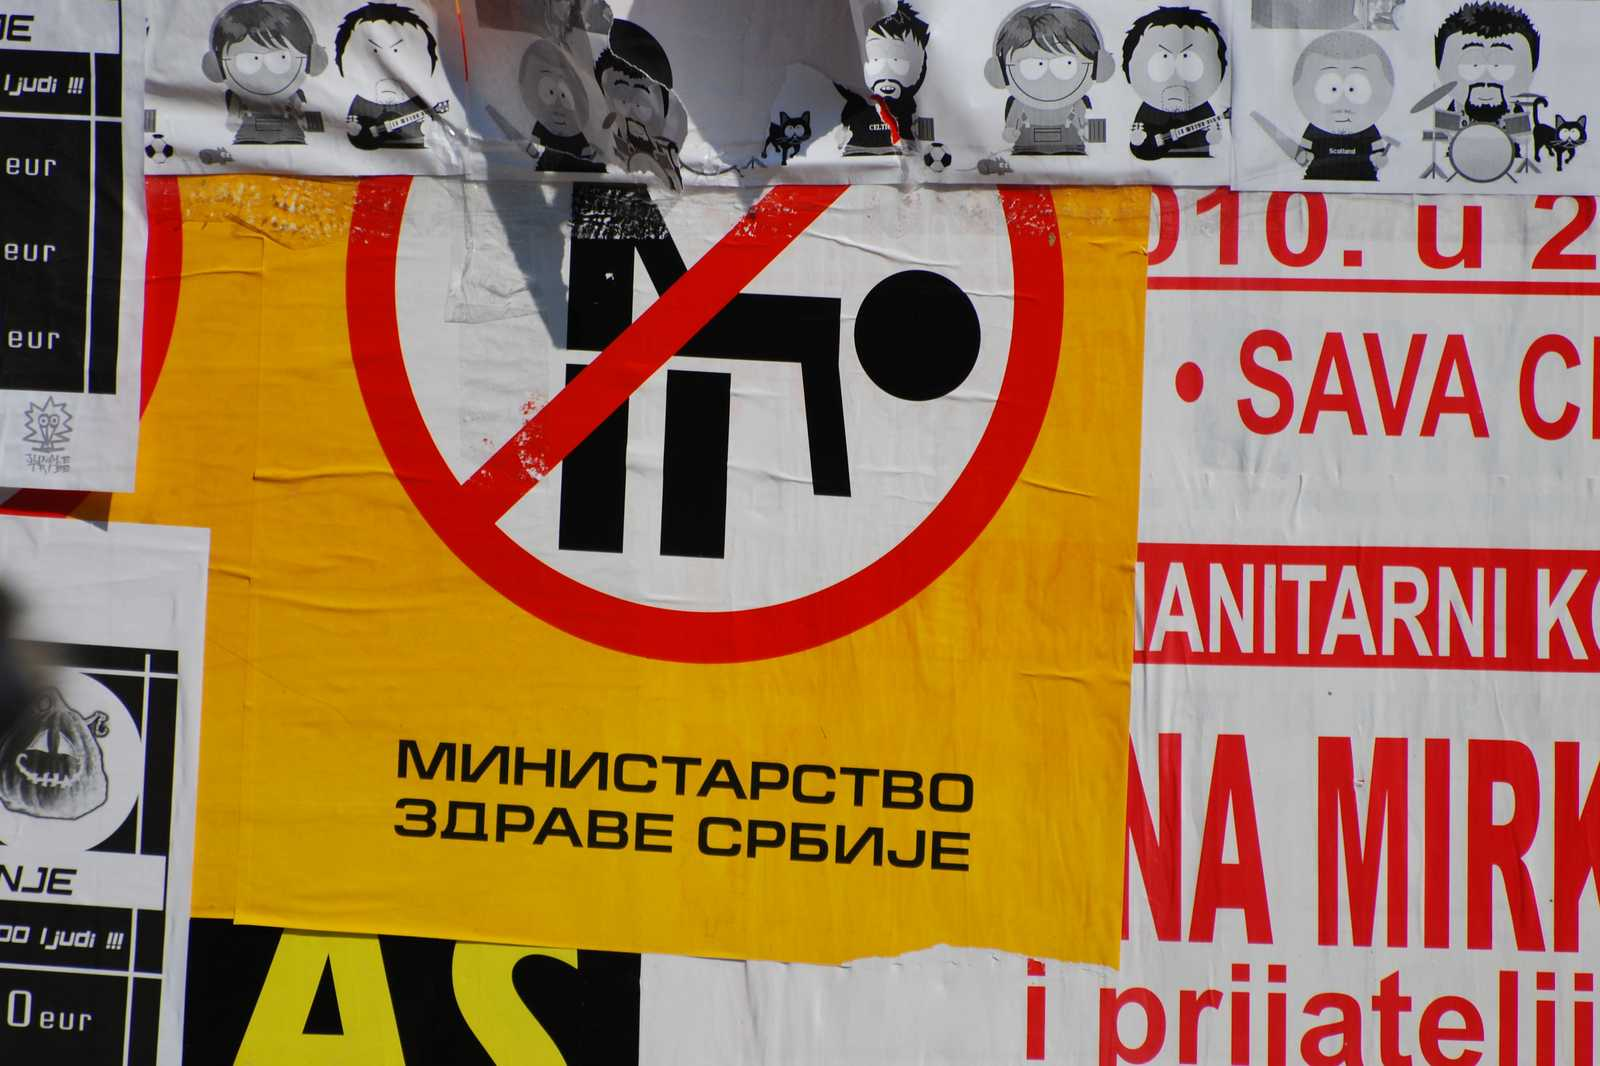 LGBT 2010 - A message sent to all by an extremist right-wing organization, titled: Ministarstvo zdravlja Srbije (The Ministry of Health)